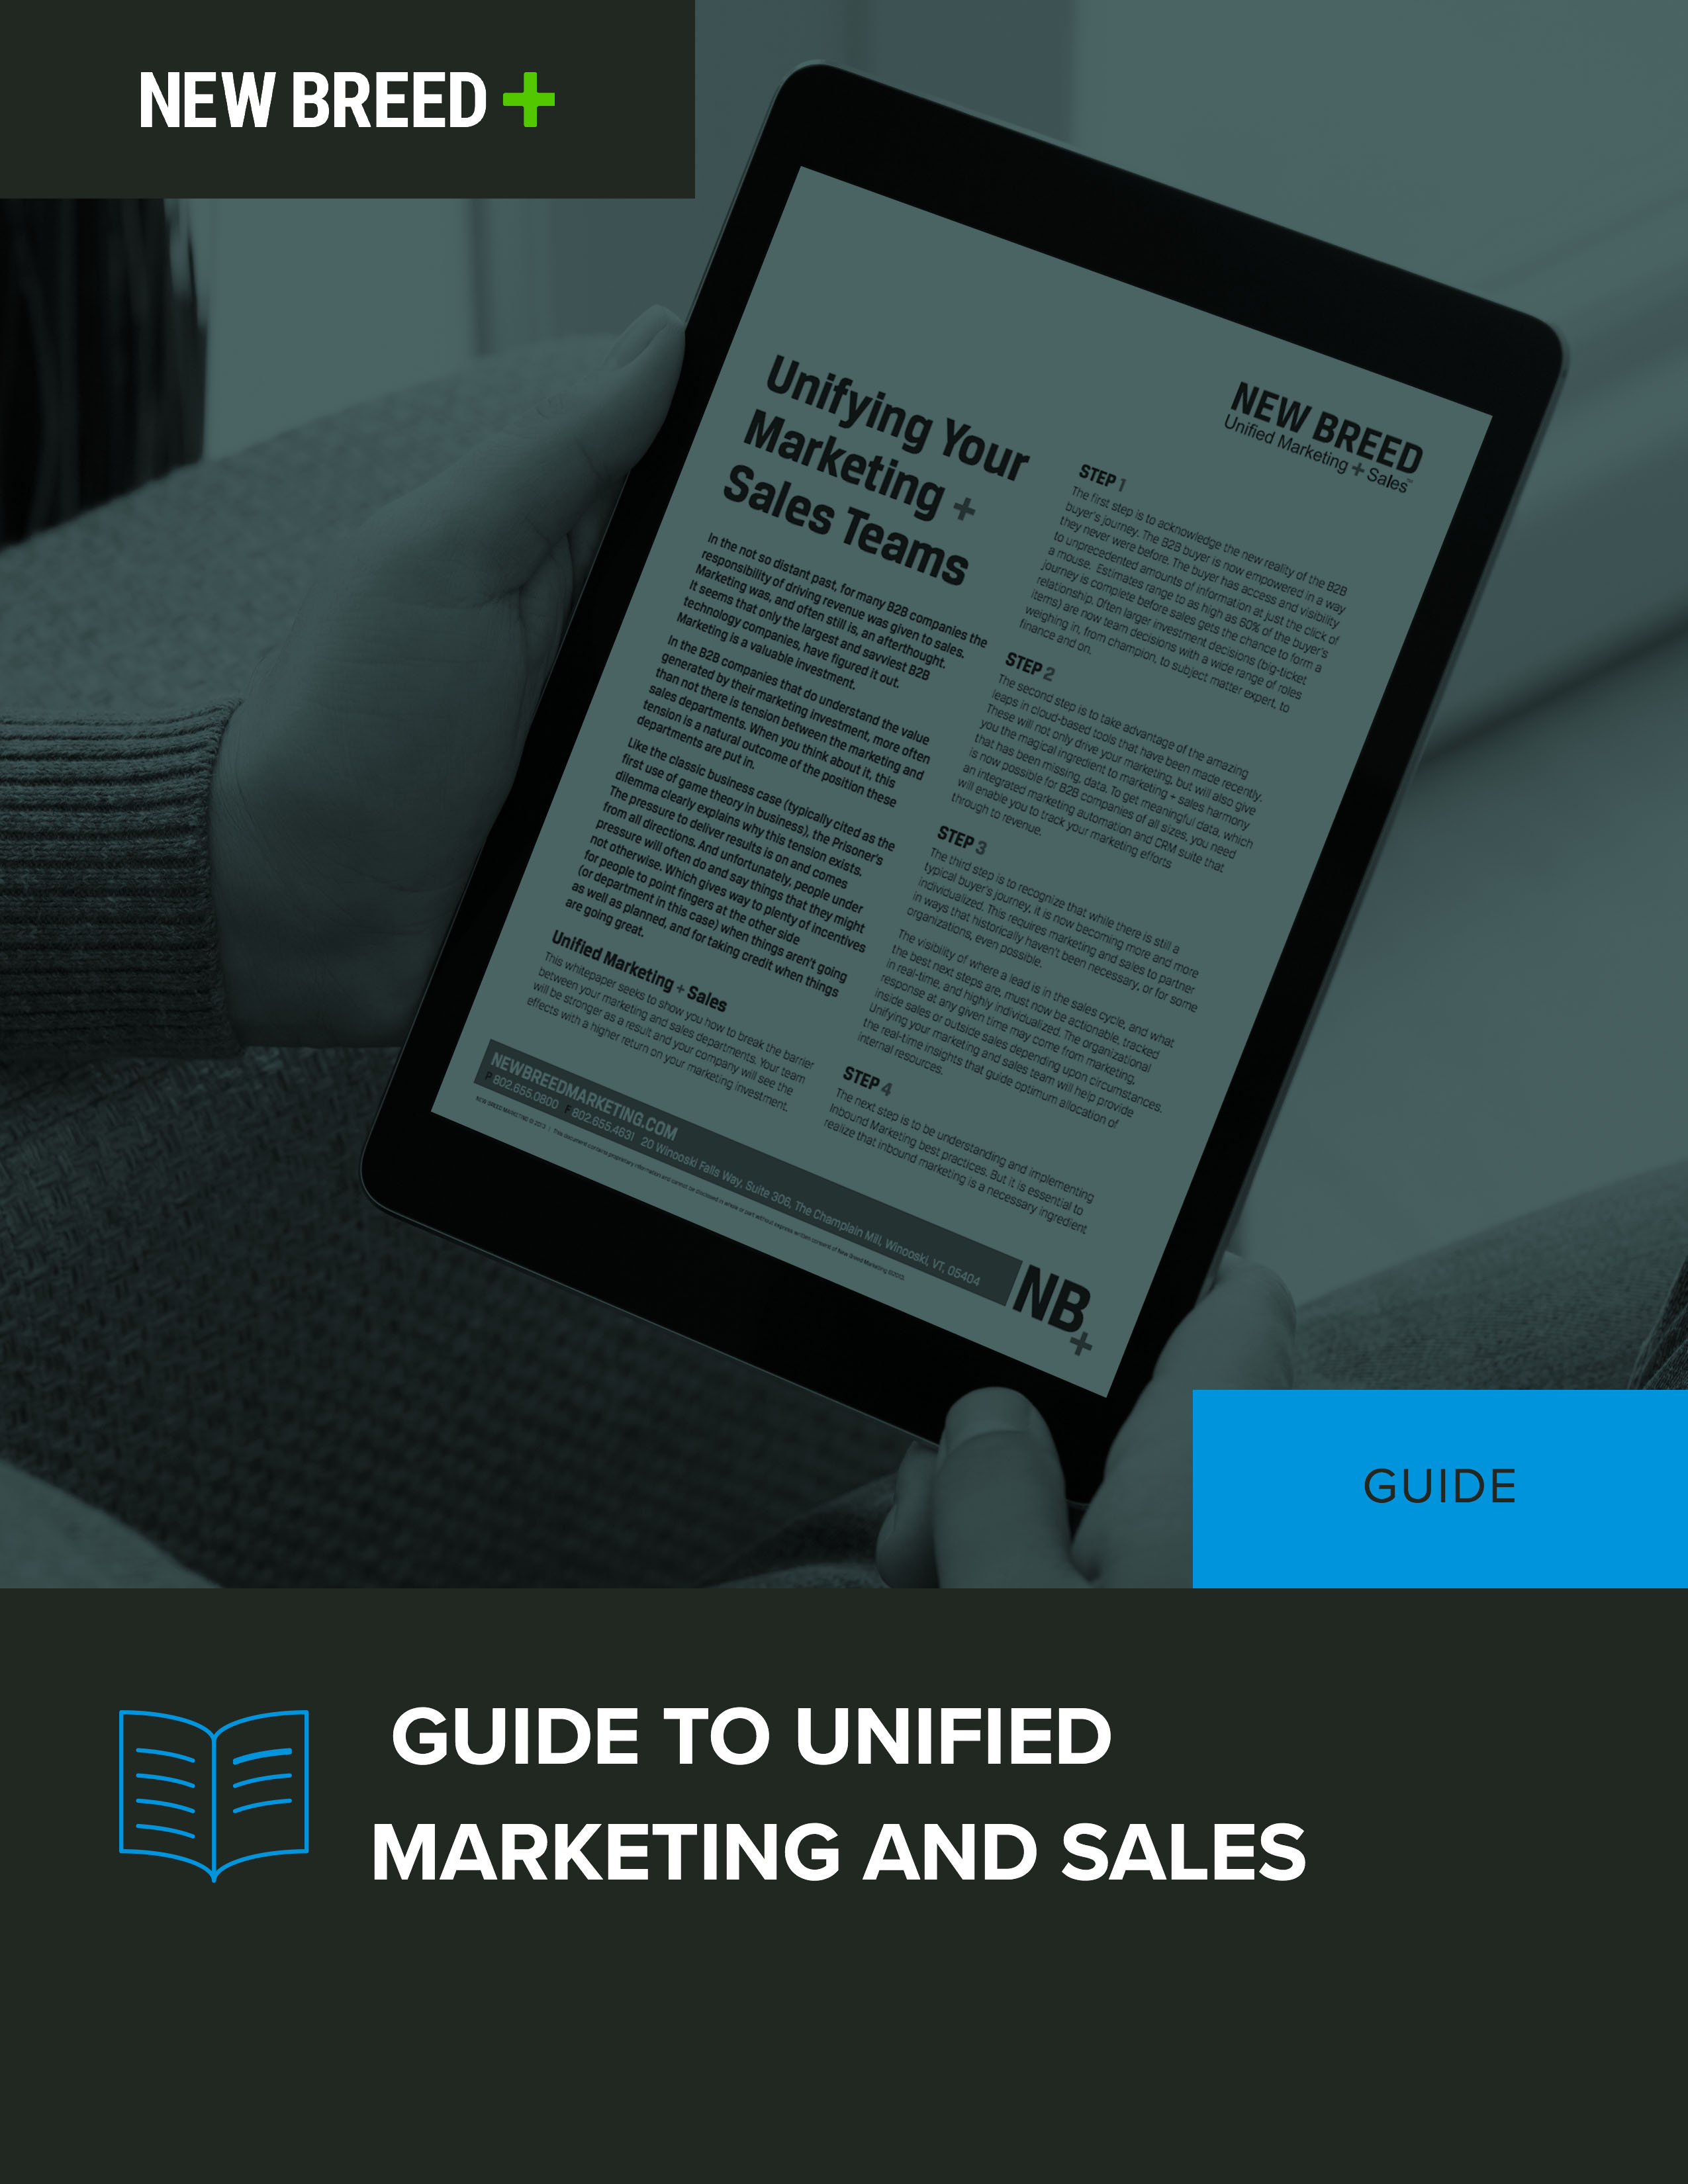 unified marketing and sales guide